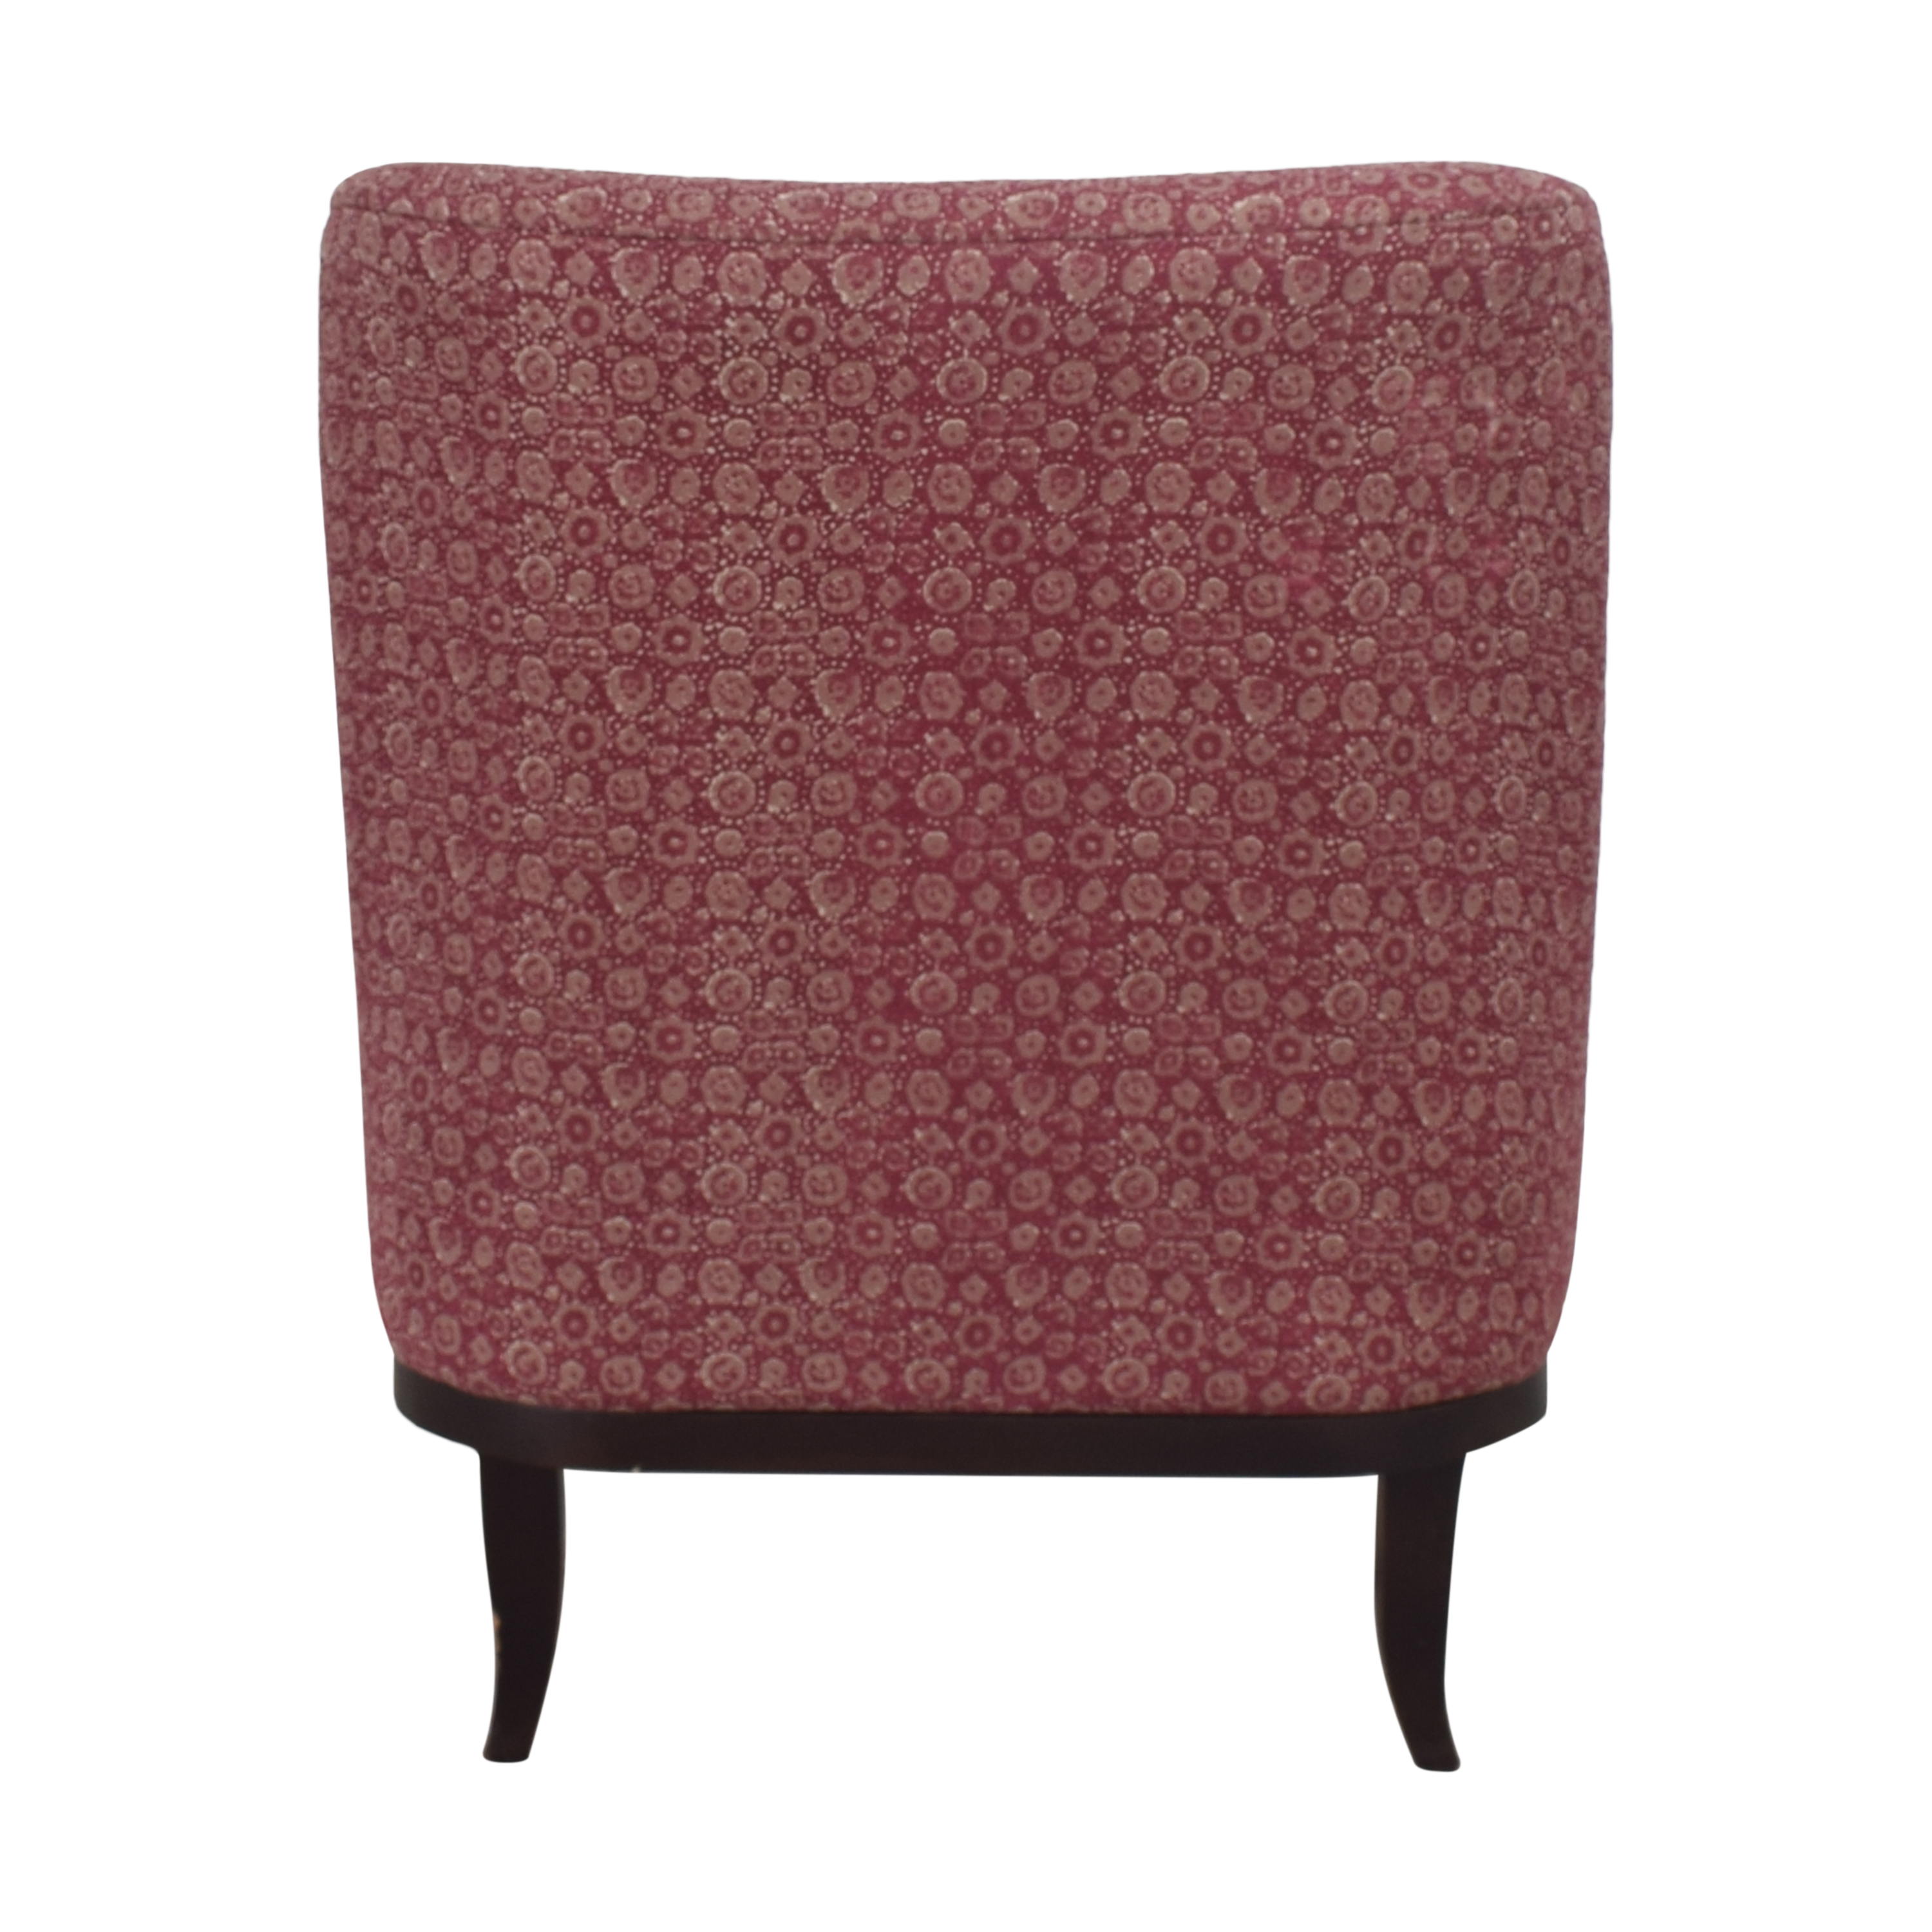 Manor & Mews Manor & Mews Cary Armchair and Ottoman